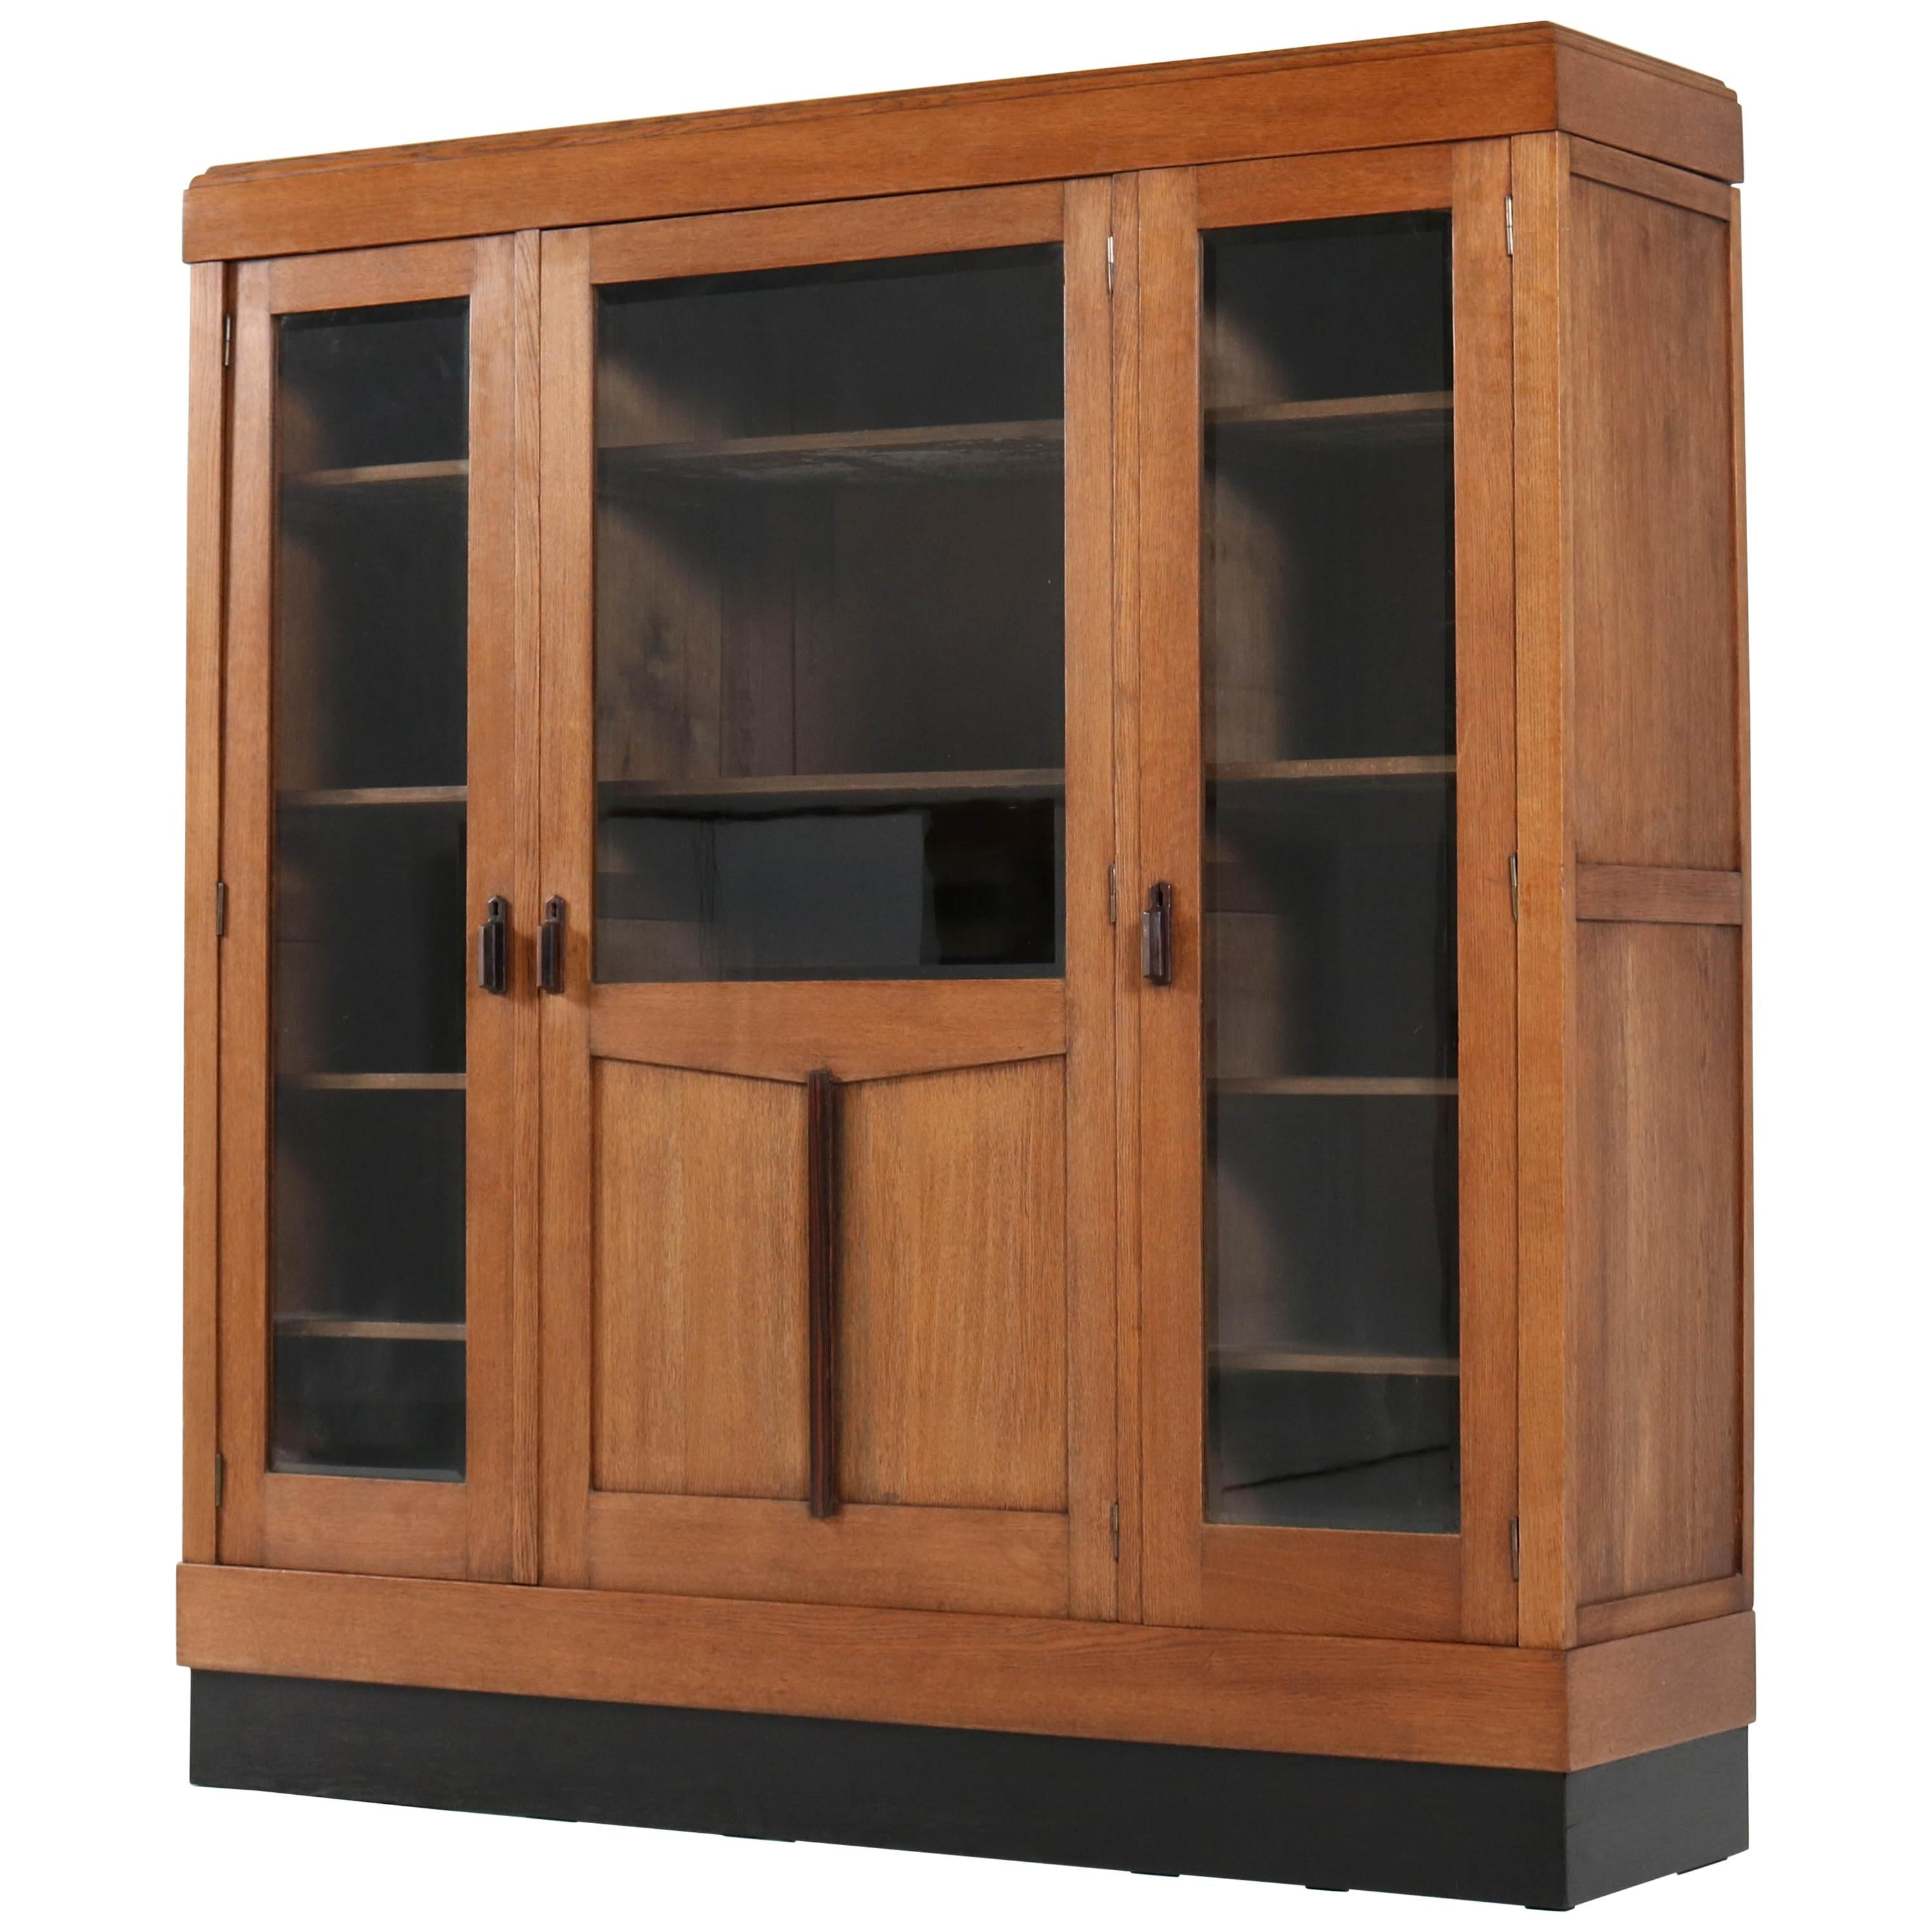 Mensole Wooden Art Art Nouveau Bookcases 21 For Sale At 1stdibs